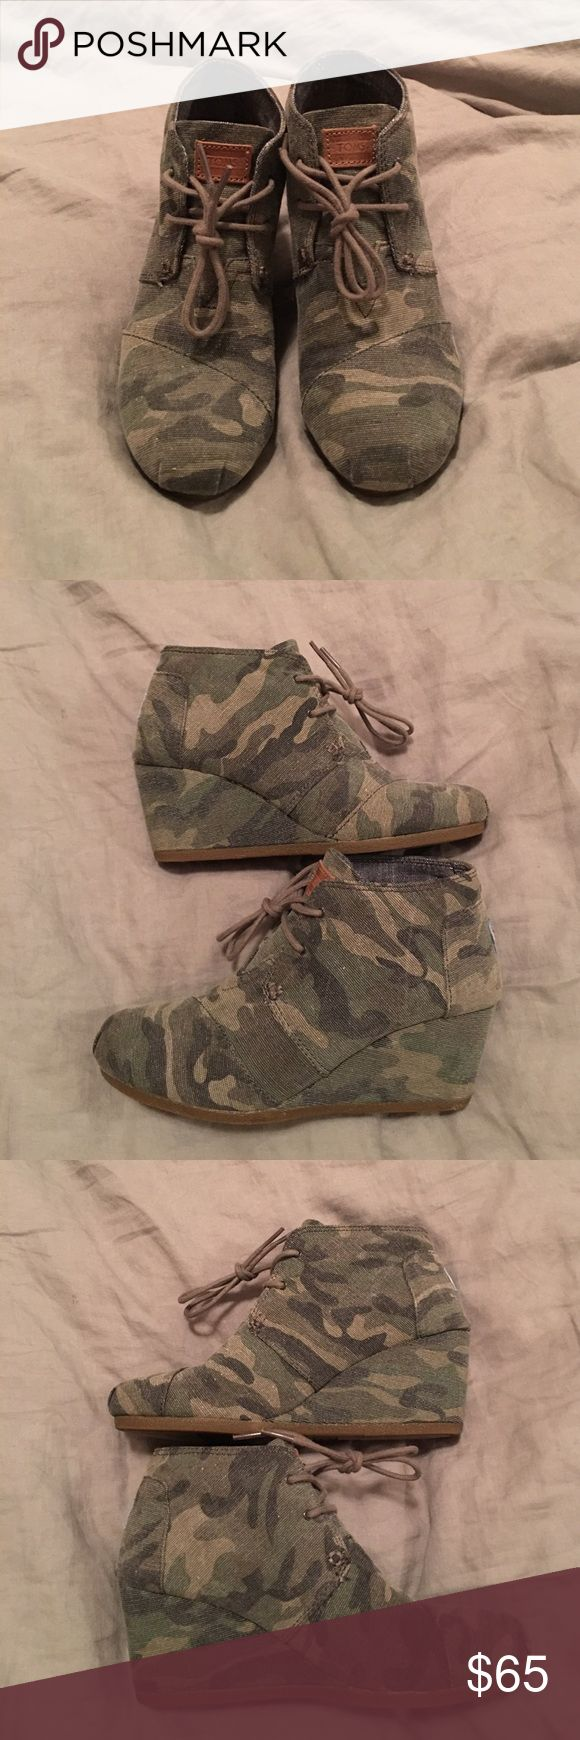 FREE GIFT!!! TOMS Camo wedge CHOICE OF FREE PAIR OF EARRINGS WITH PURCHASE OF 2 OR MORE!!!! Hard to find TOMS camp Desert Wedge. They are in excellent condition and have only been worn a handful of times!!! TOMS Shoes Wedges